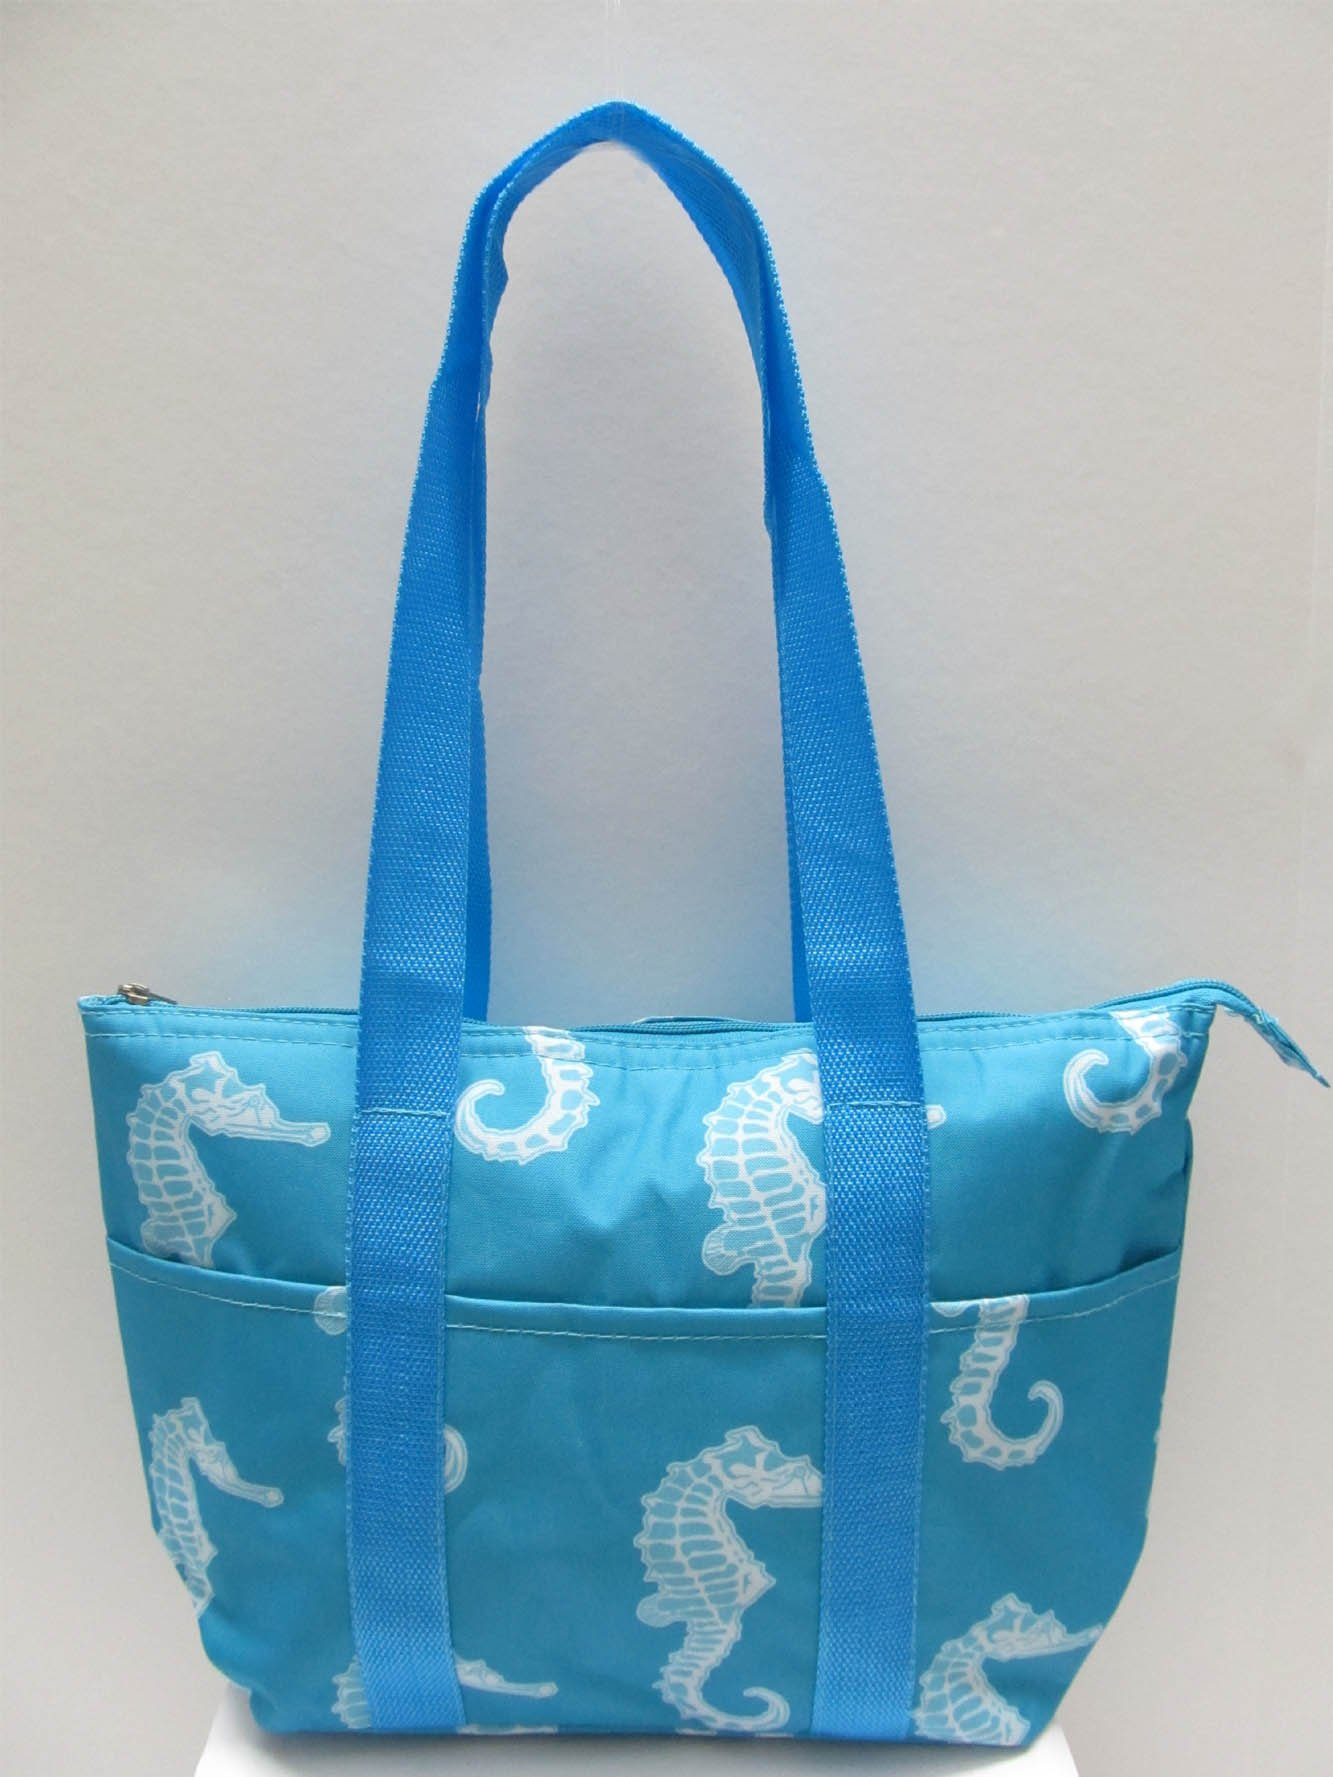 Good Bag Insulated Lunch Bag Portable Carry Storage Lunch Tote Bag - Seahorse Sky Blue